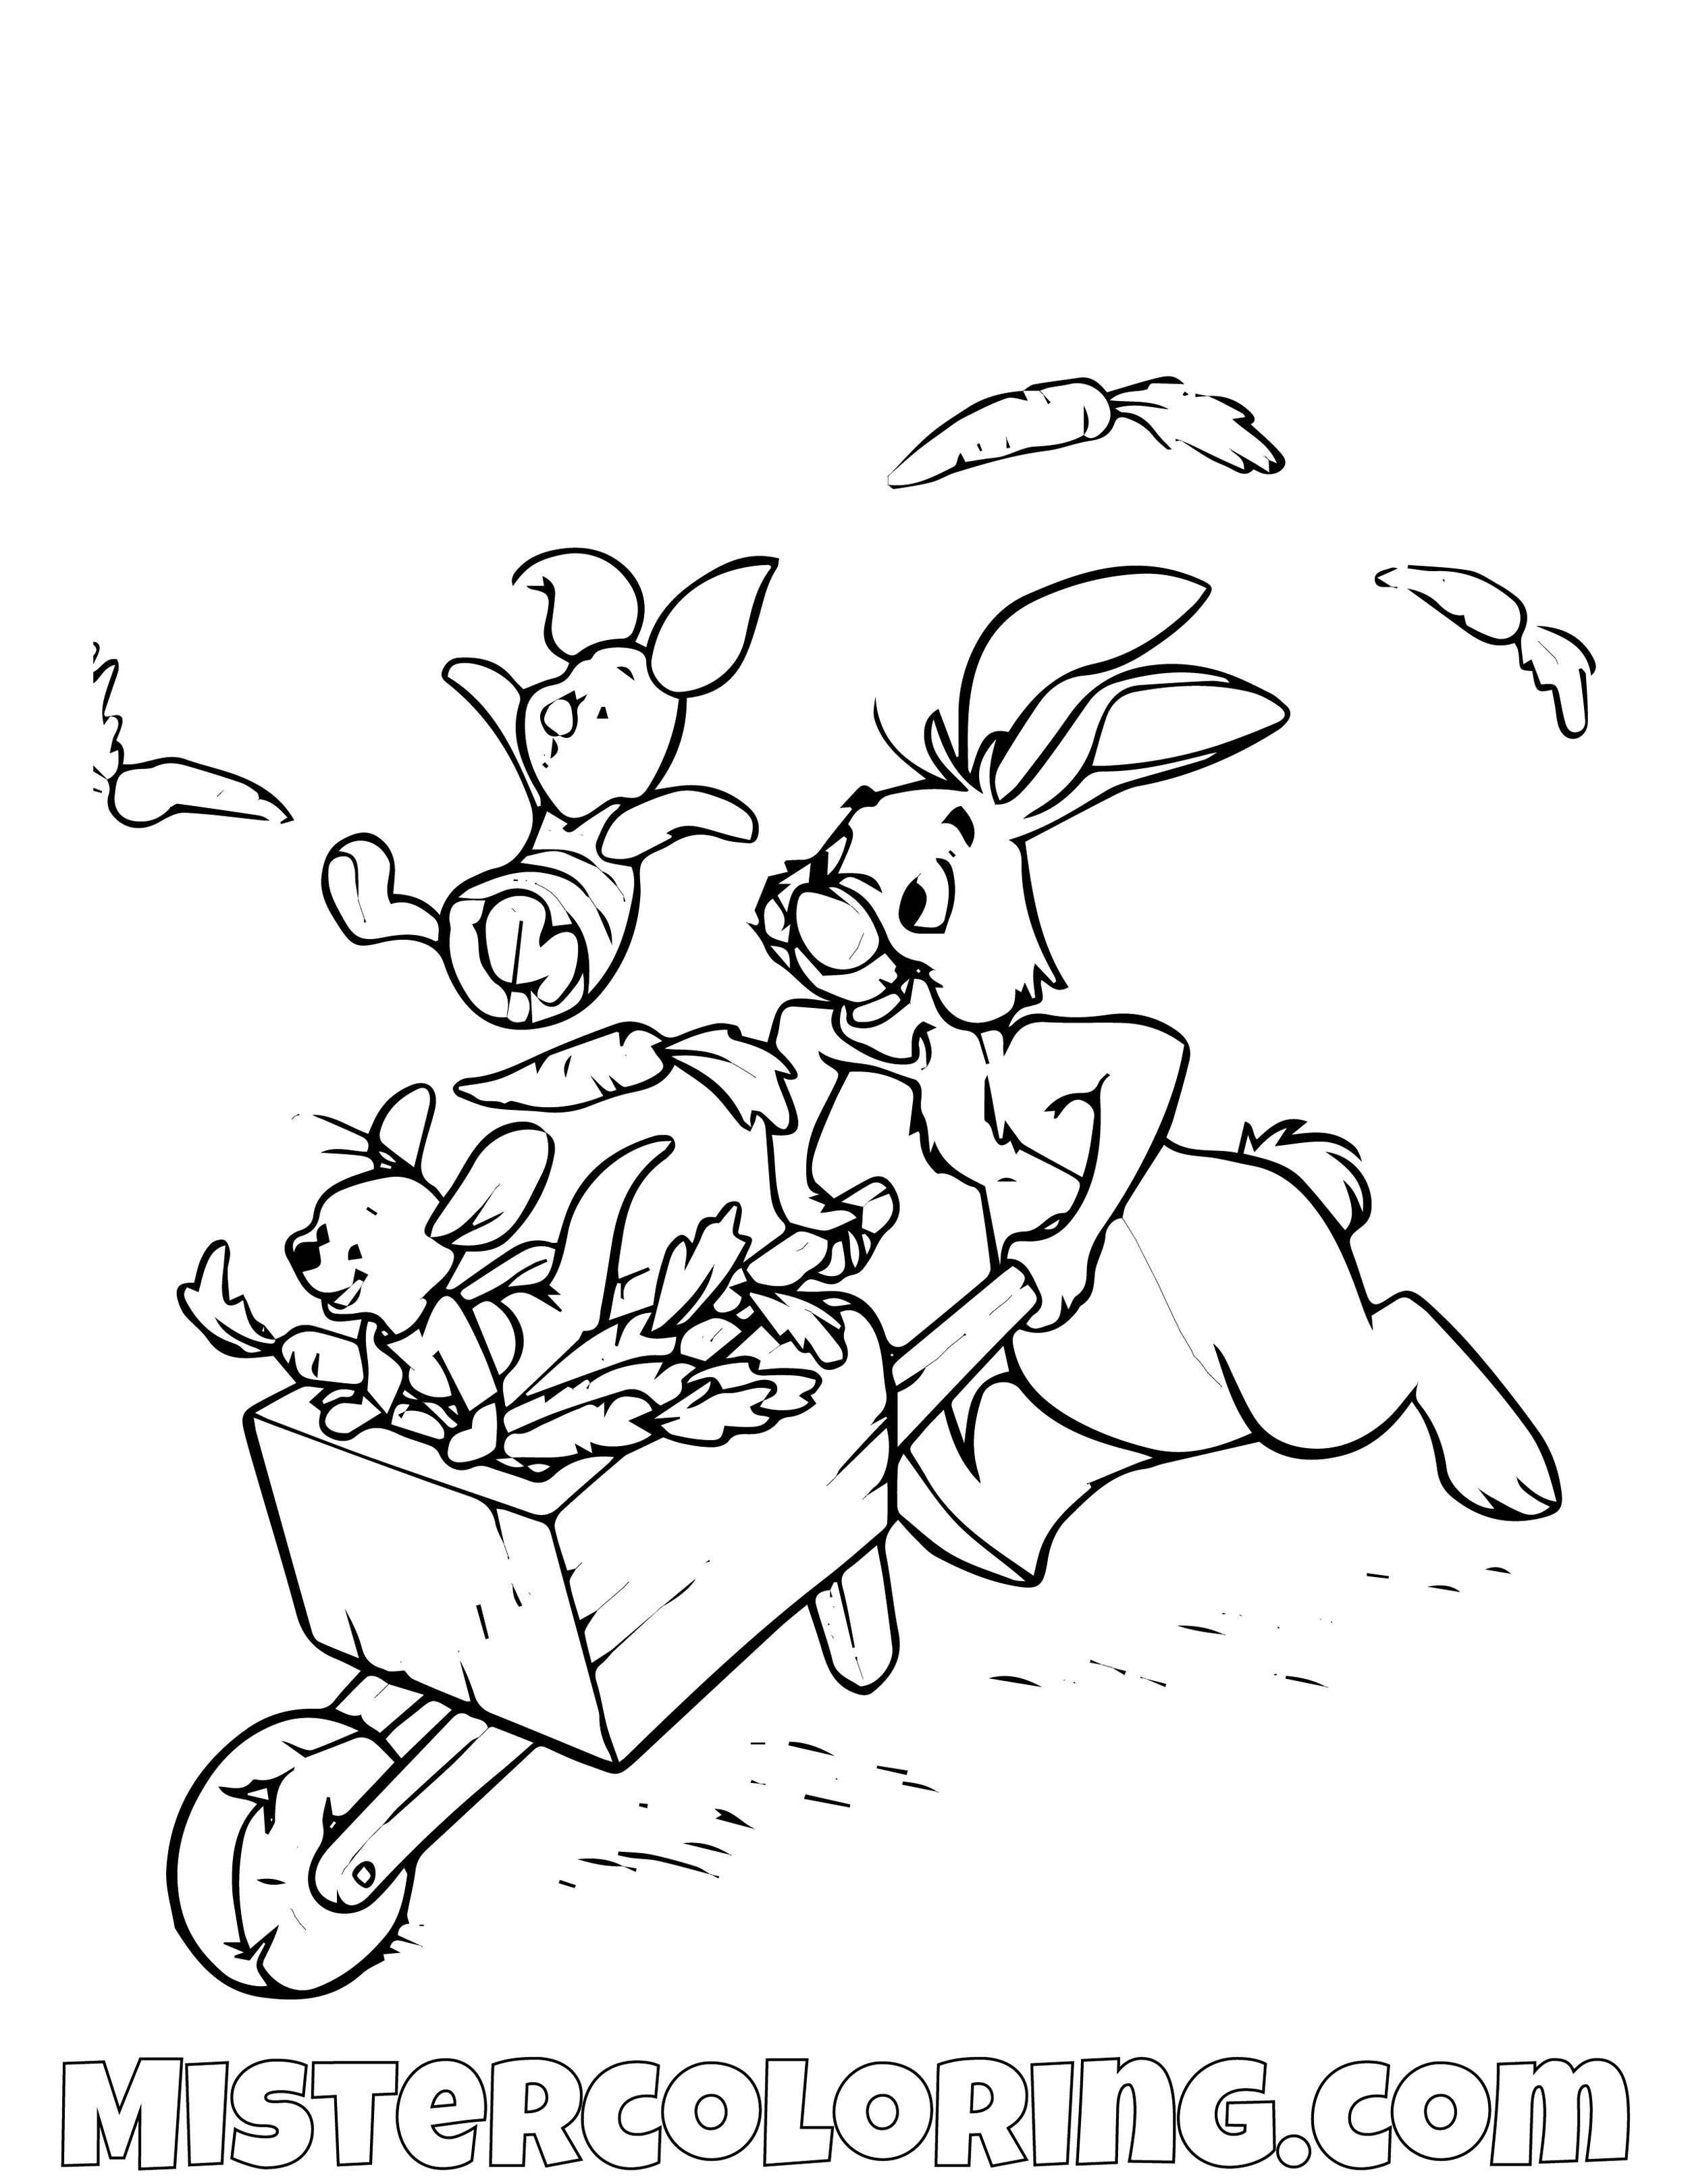 Sports coloring: Coloring Pages Of Winnie The Pooh And Piglet ... | 1294x1000